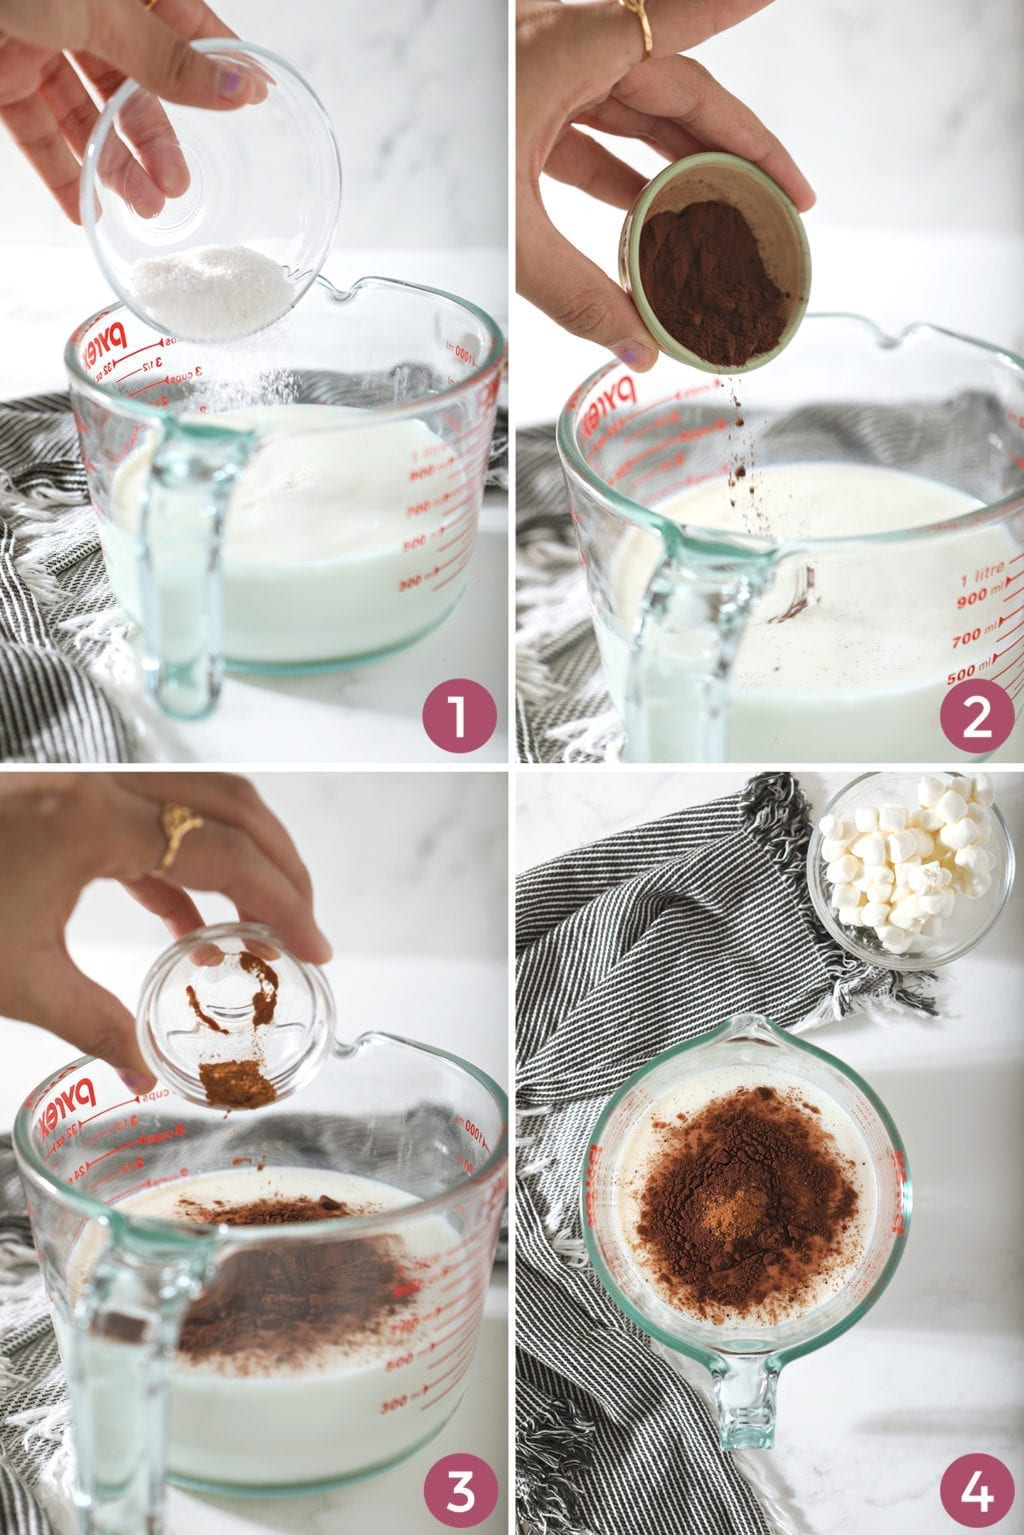 A collage of four images shows how to measure in the ingredients and how the cocoa looks before heating